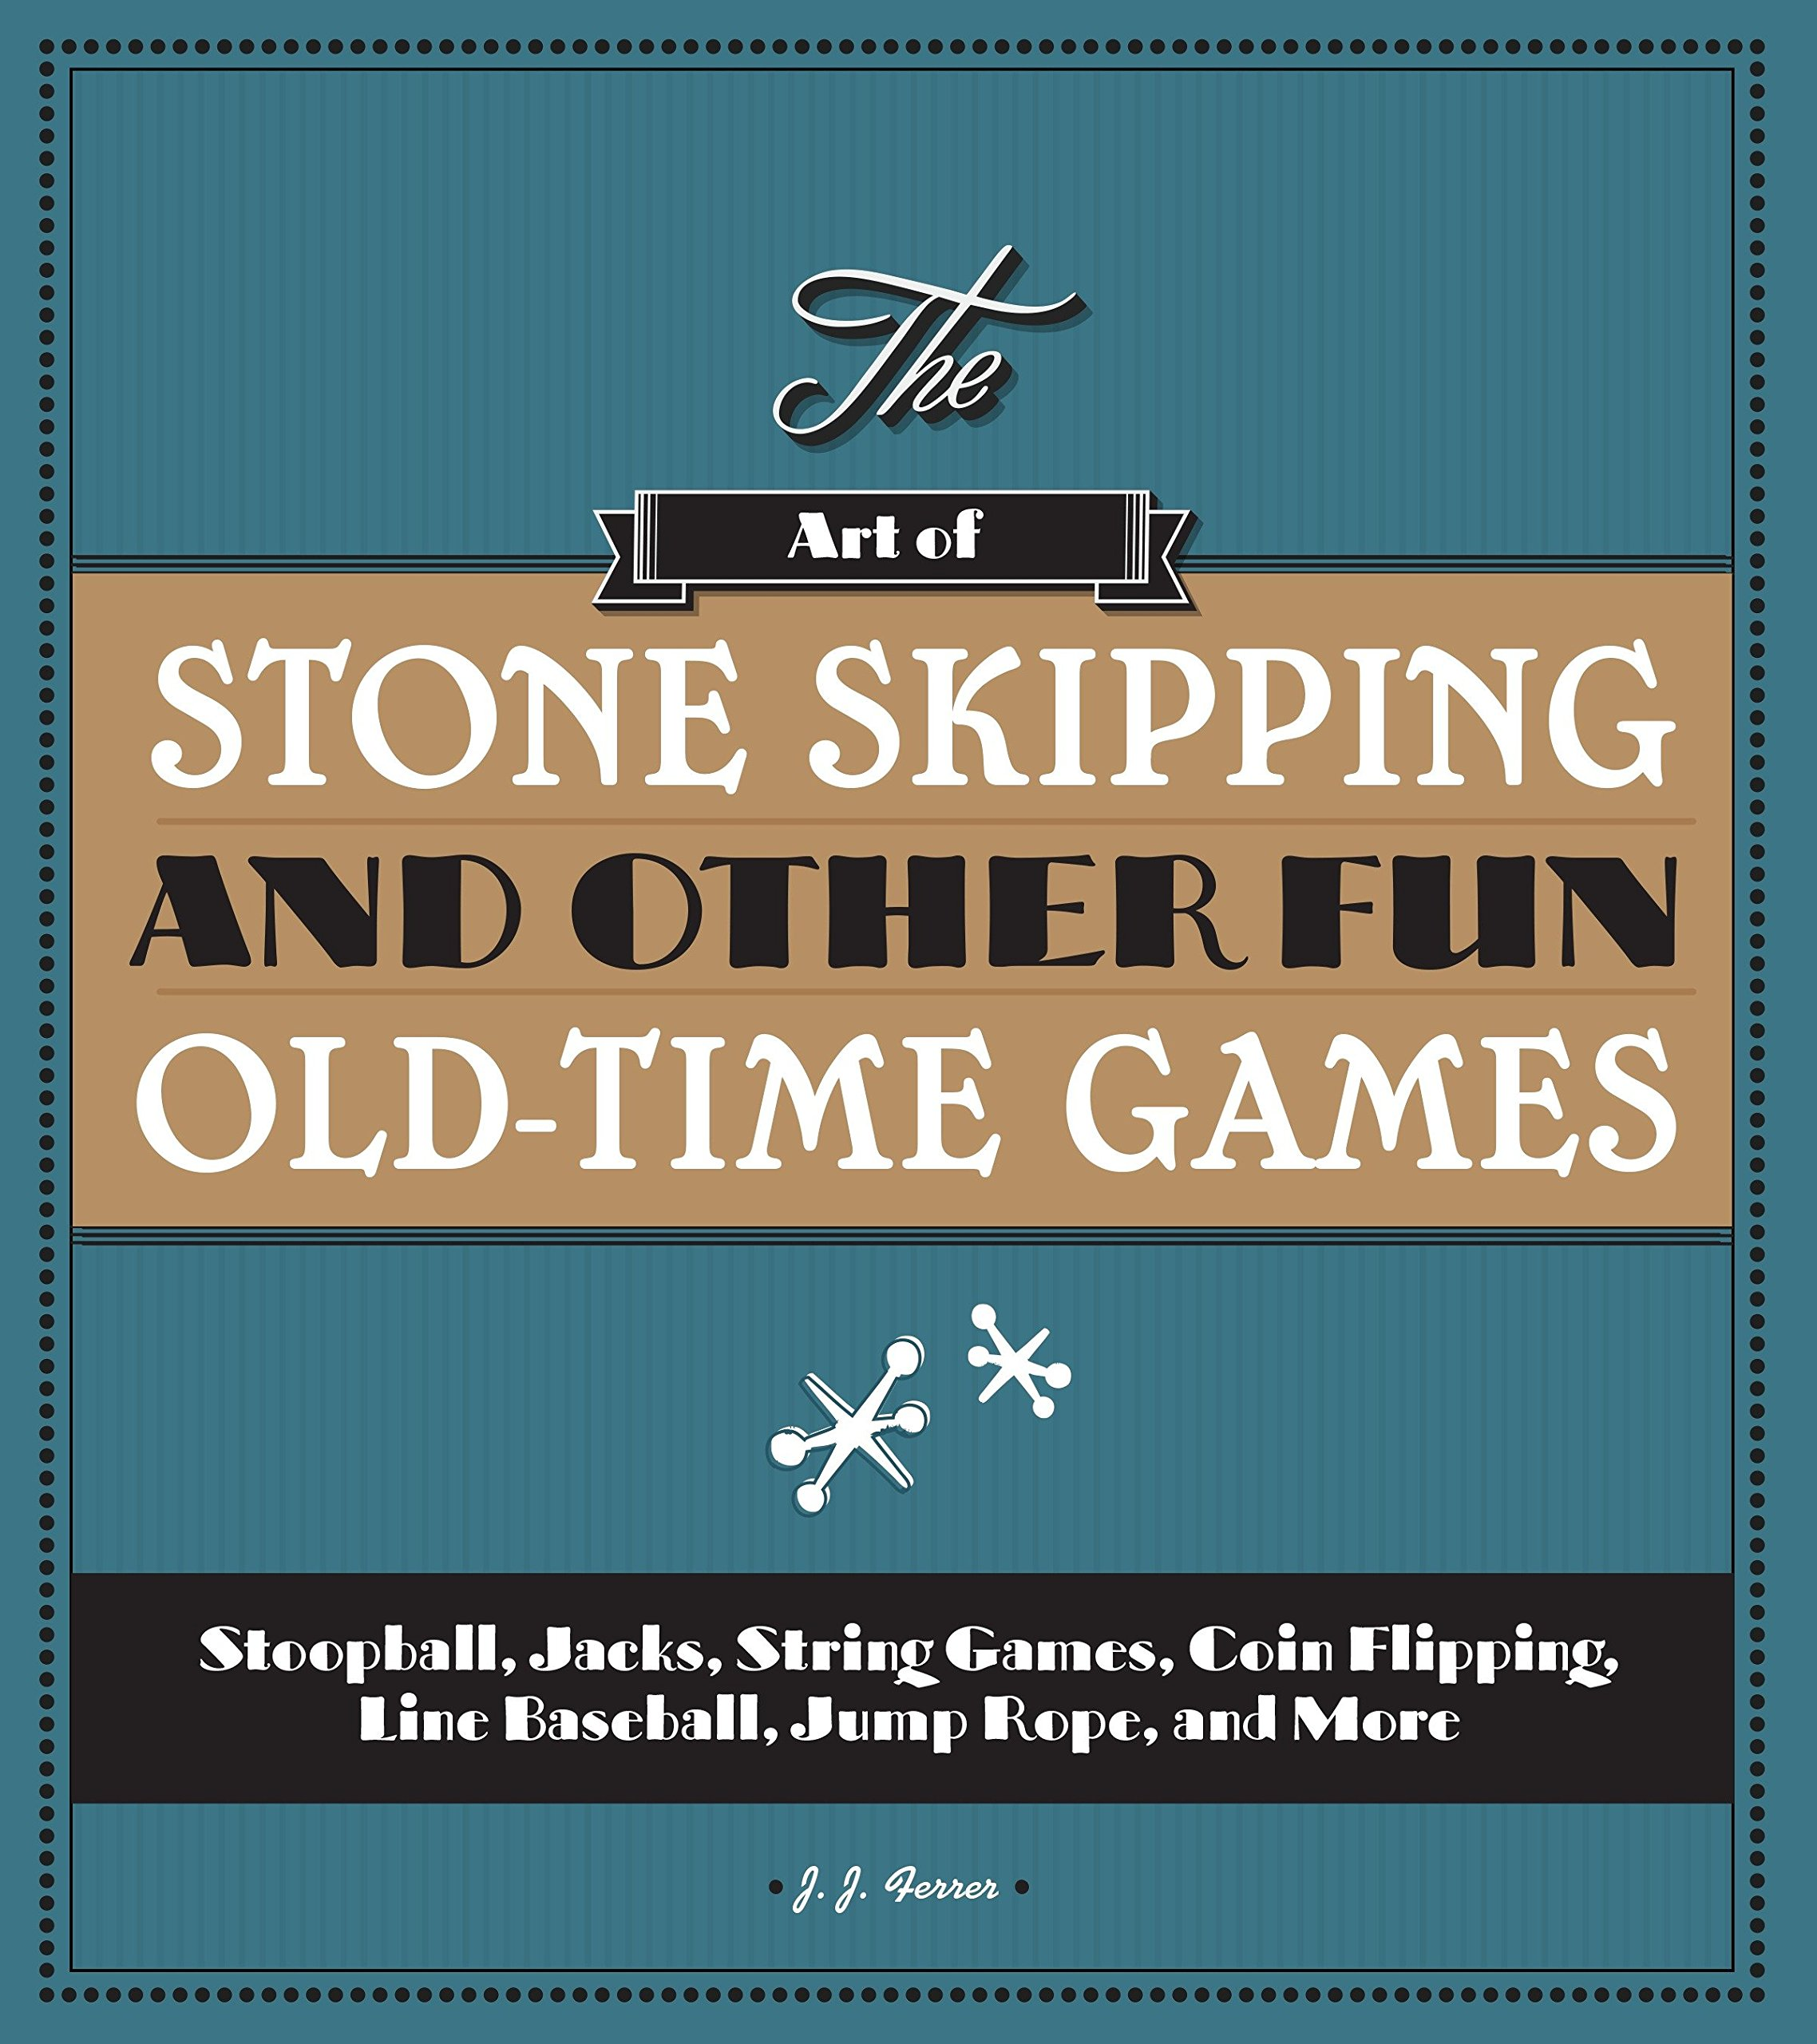 Read Online The Art of Stone Skipping and Other Fun Old-Time Games: Stoopball, Jacks, String Games, Coin Flipping, Line Baseball, Jump Rope, and More PDF